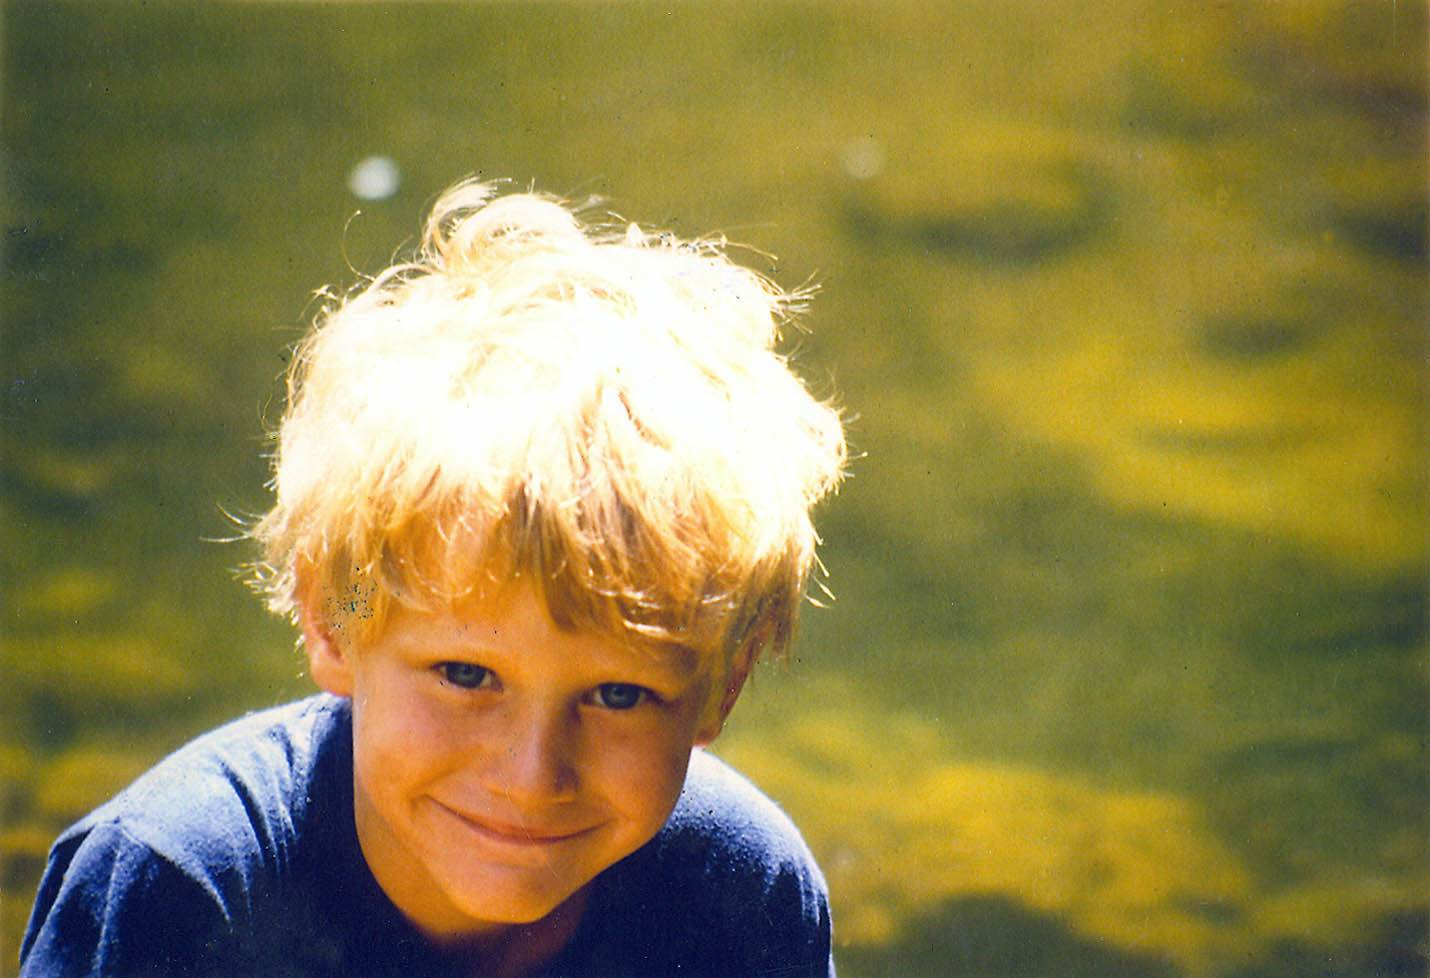 Seth at age 4. Seth Lieberman of Warrenville, died of a heroin overdose at age 21 on February 17, 2002.